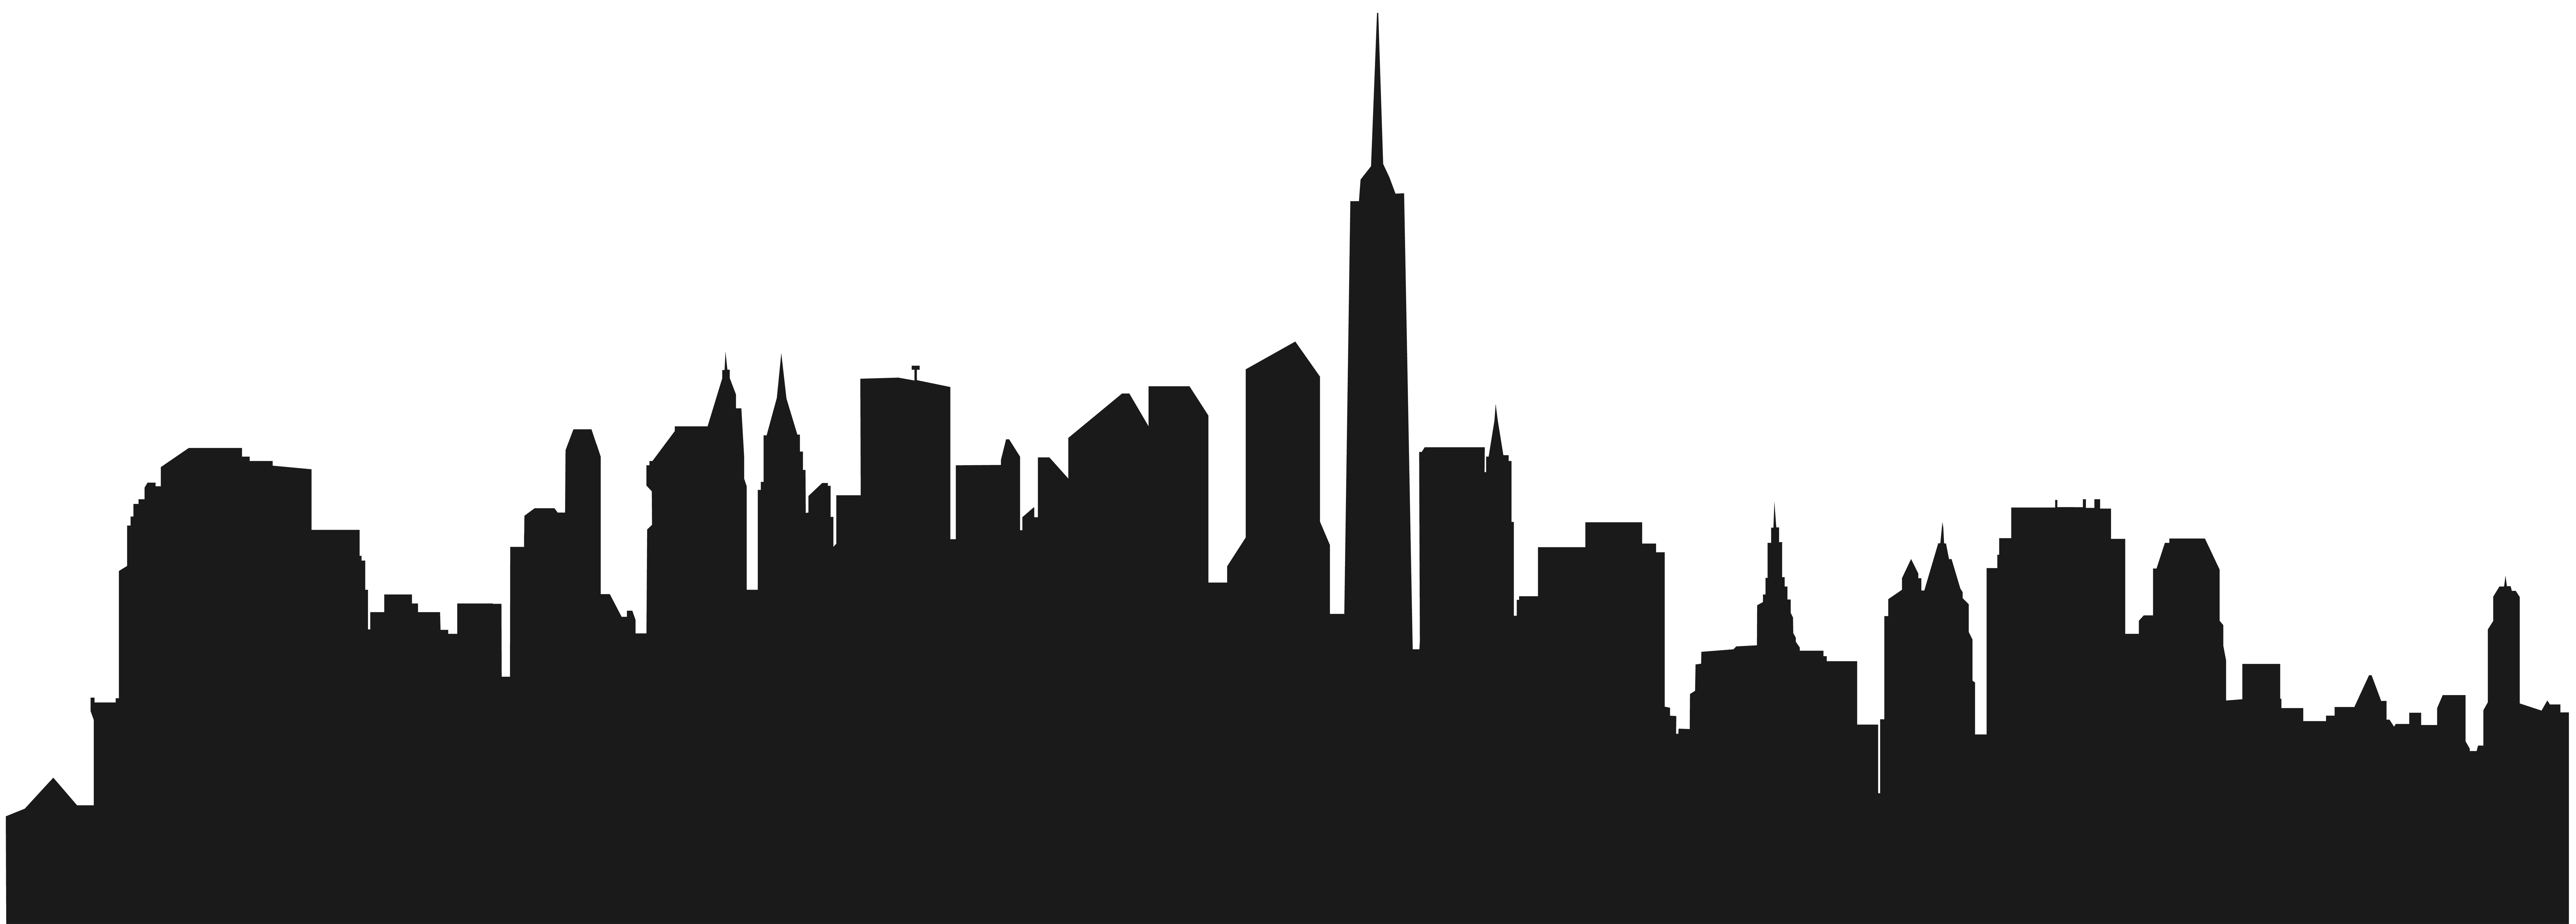 8000x2870 City Buildings Silhouette Png Clip Artu200b Gallery Yopriceville